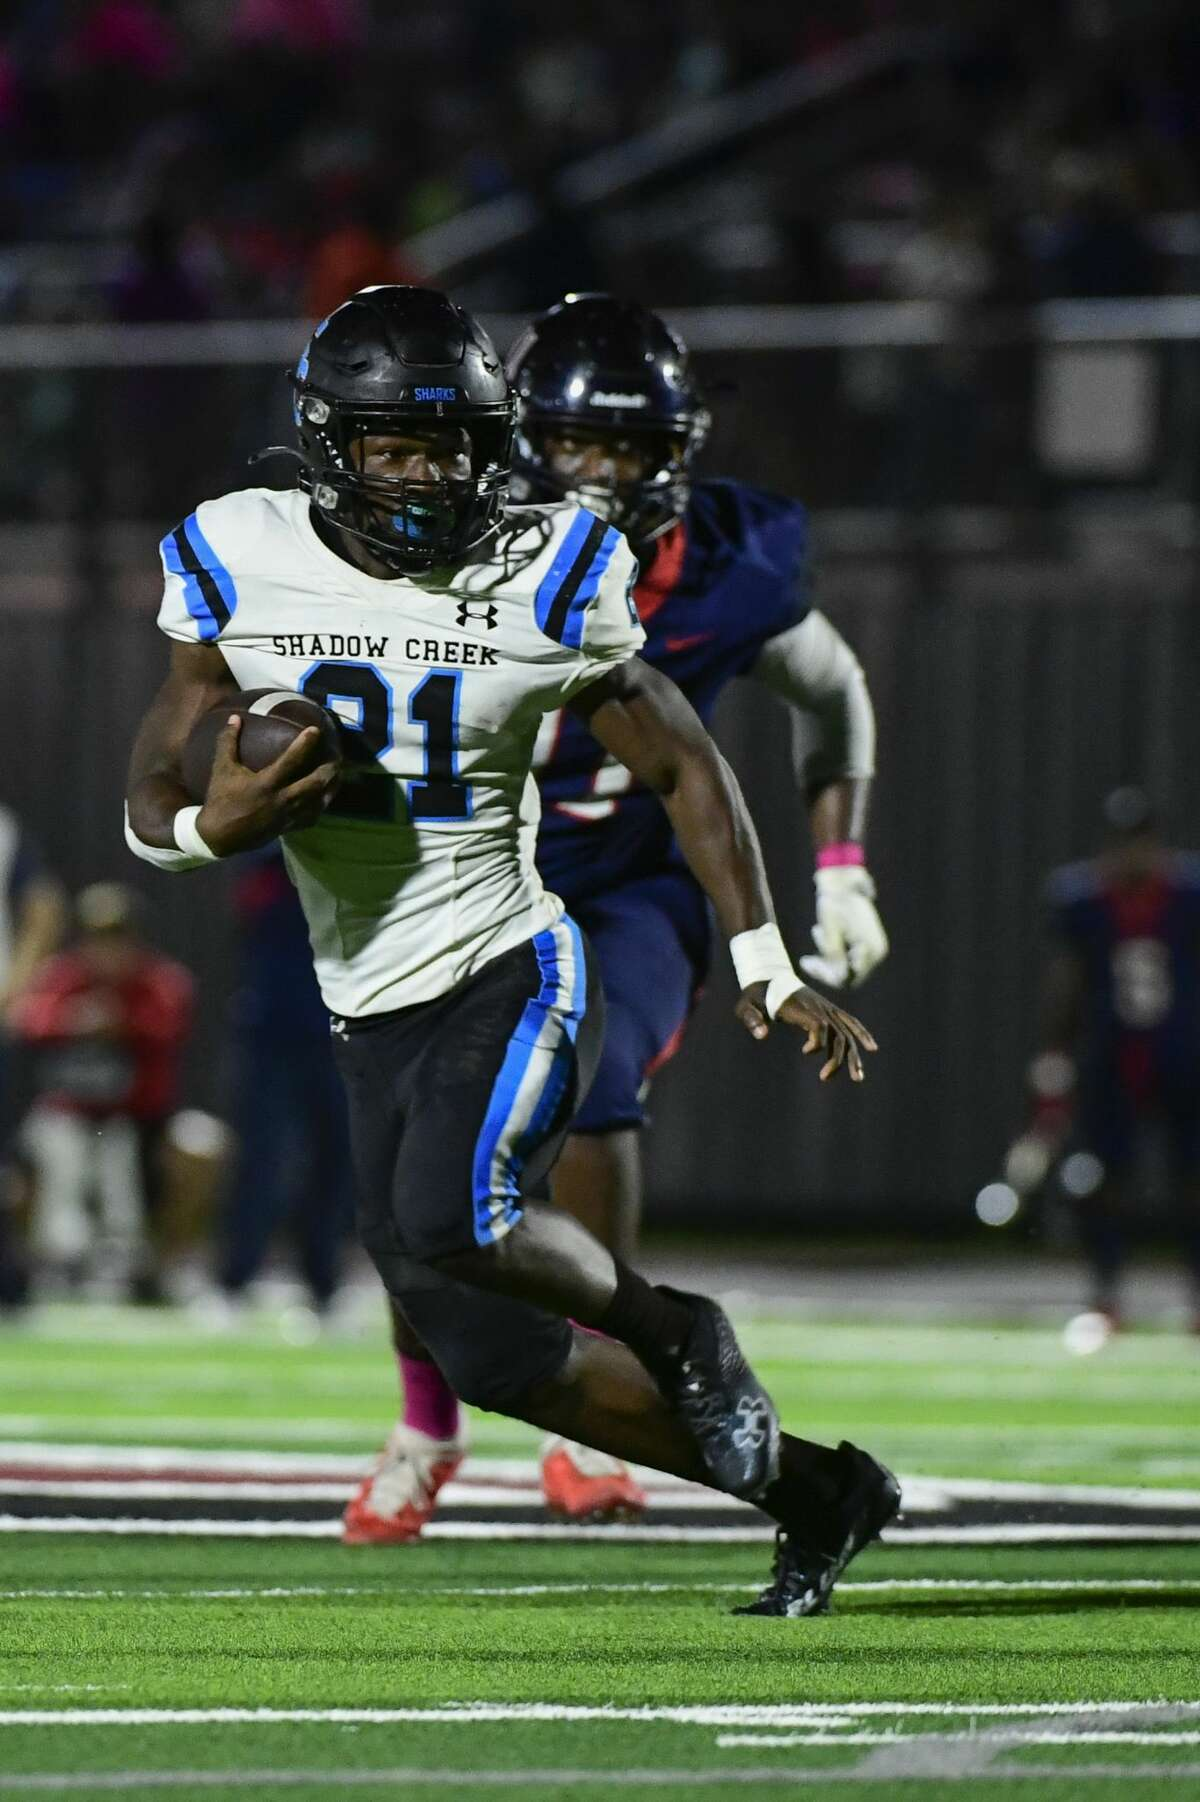 Shadow Creek's Felix Buchanan (21) runs the ball against Dawson during the first half of a District 23-6A high school football game at Pearland ISD Stadium on Friday, Oct. 1, 2021, in Pearland, Texas.